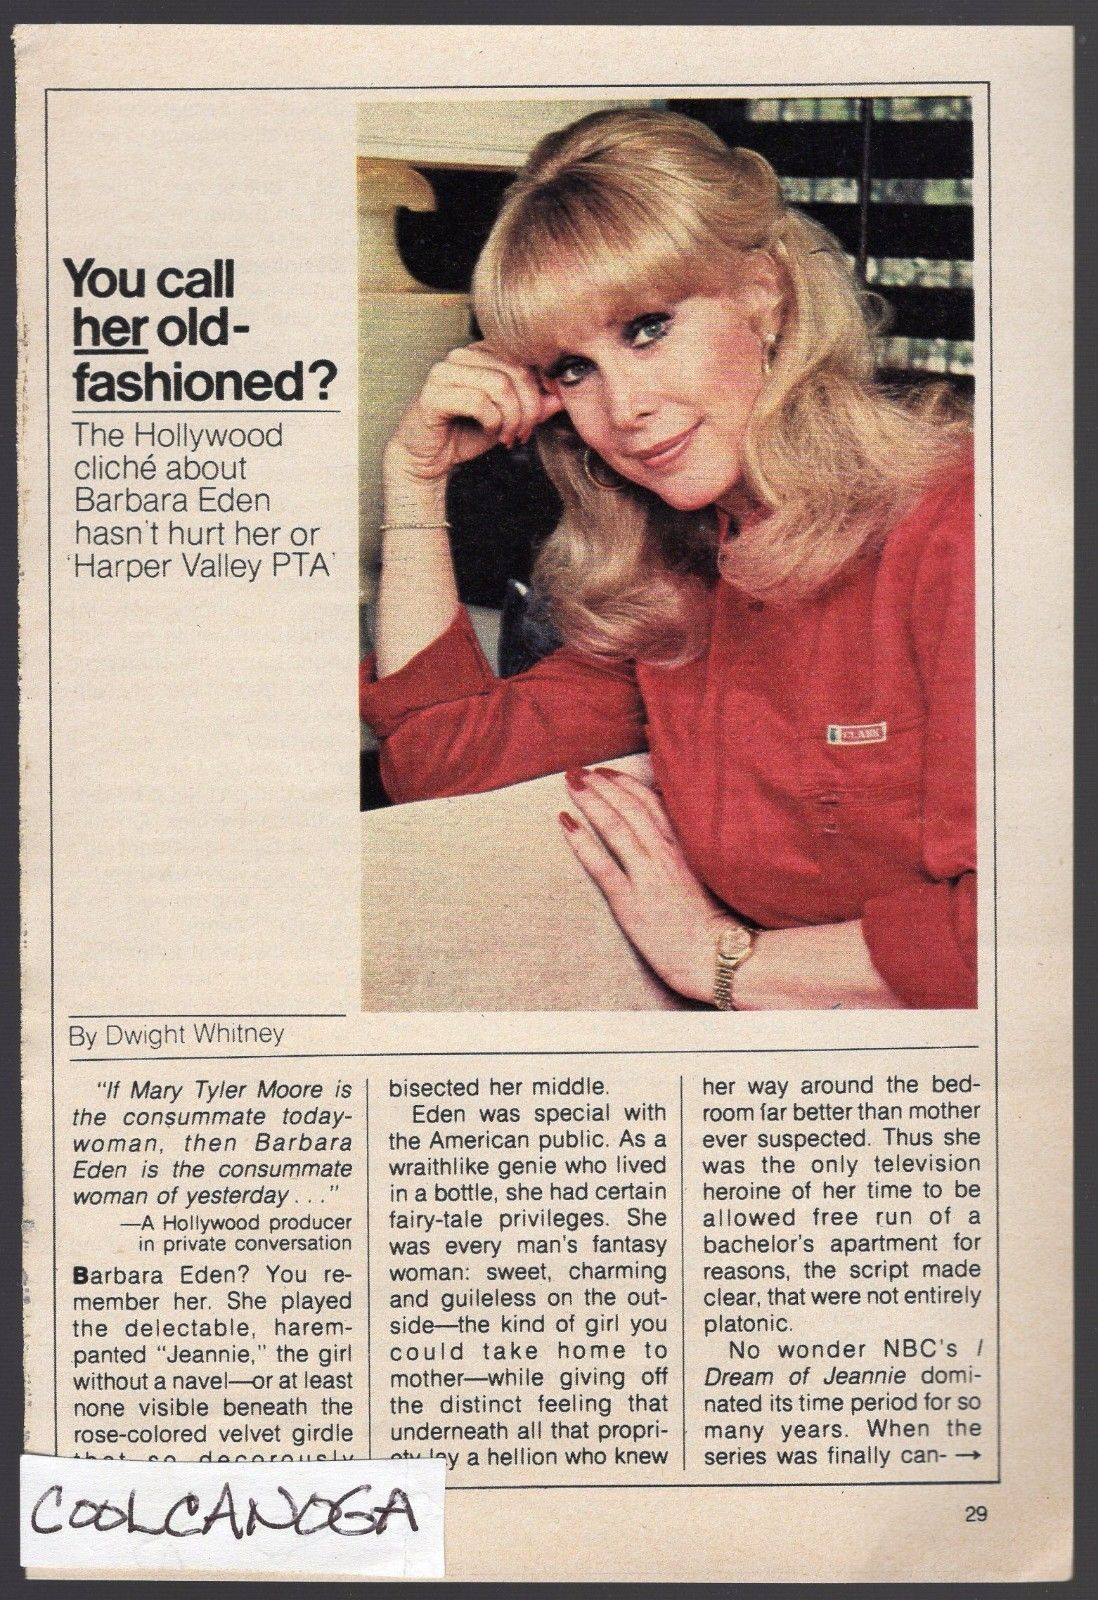 1981_TV_ARTICLE_BARBARA_EDEN_HARPER_VALLEY_PTA_I_DREAM_OF_JEANNIE_3_5_PAGES